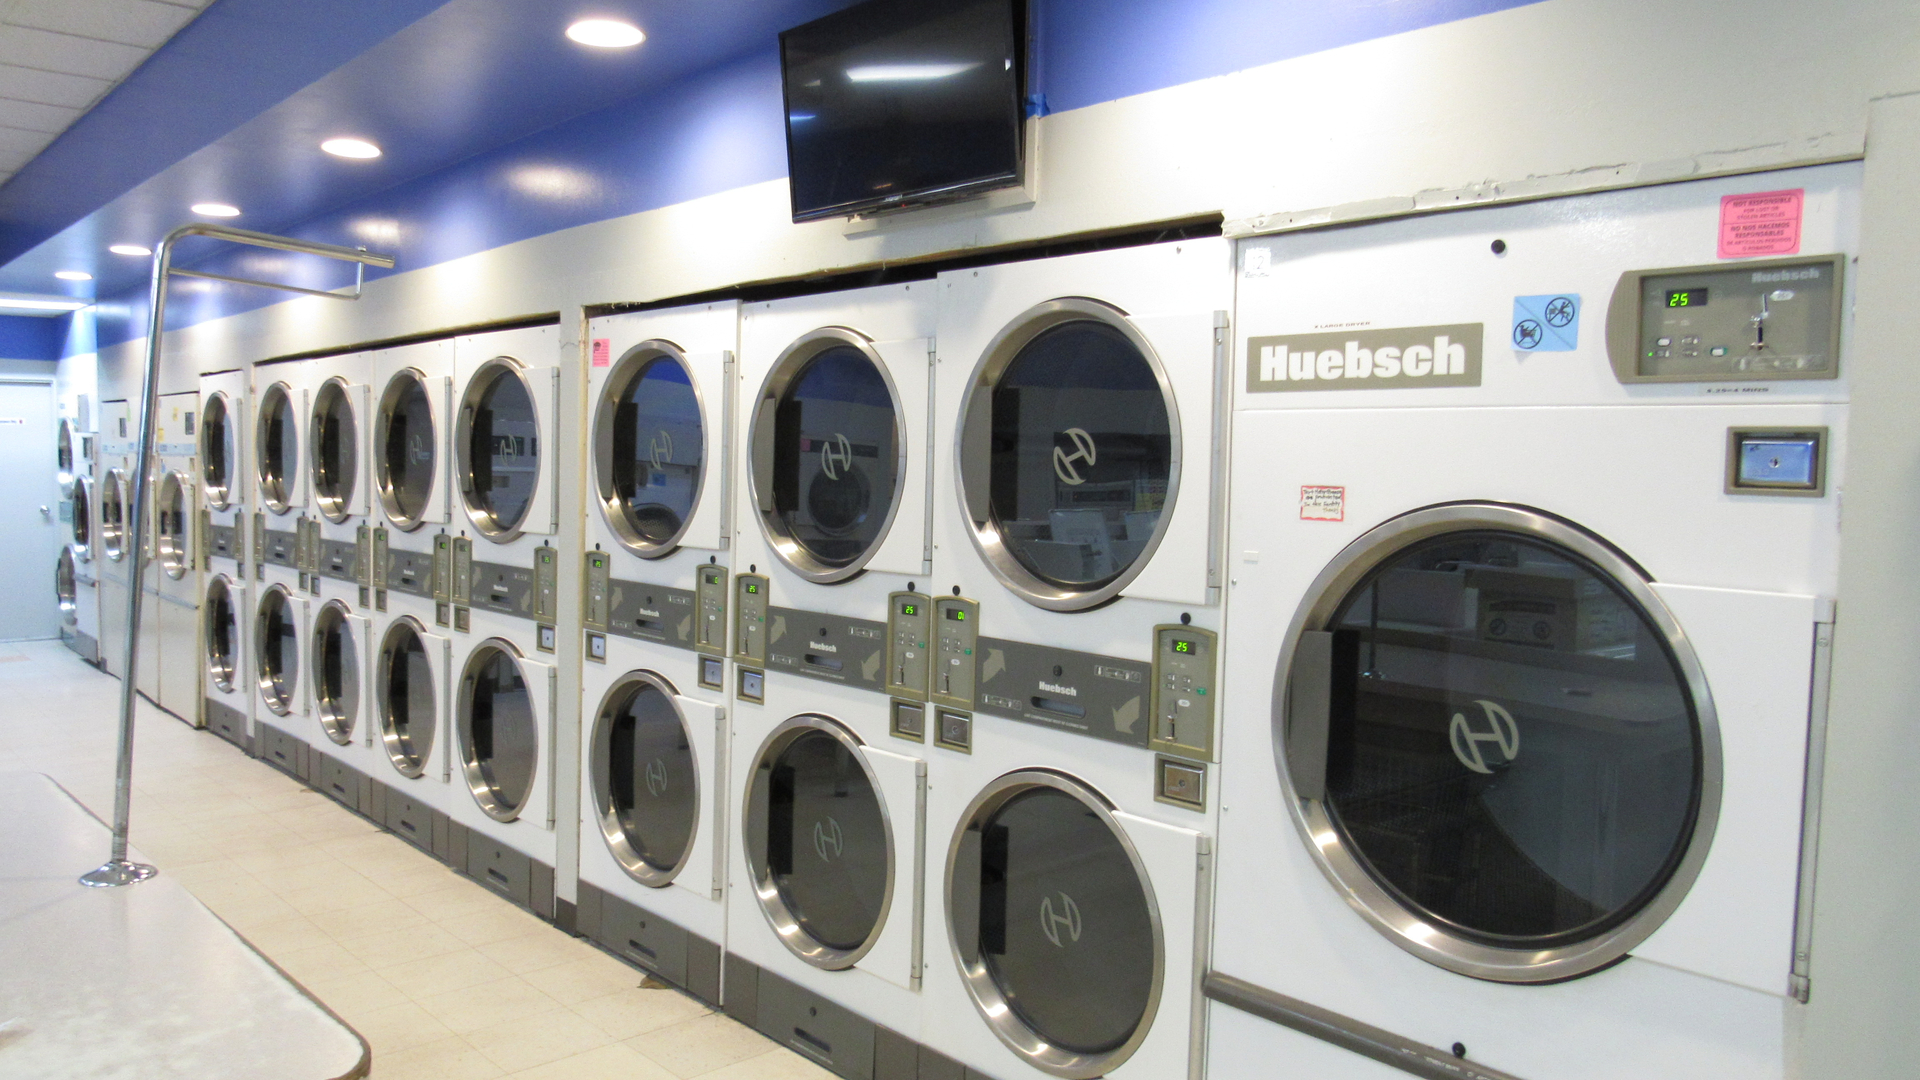 Home austin bluffs coin laundry lets do some laundry solutioingenieria Image collections